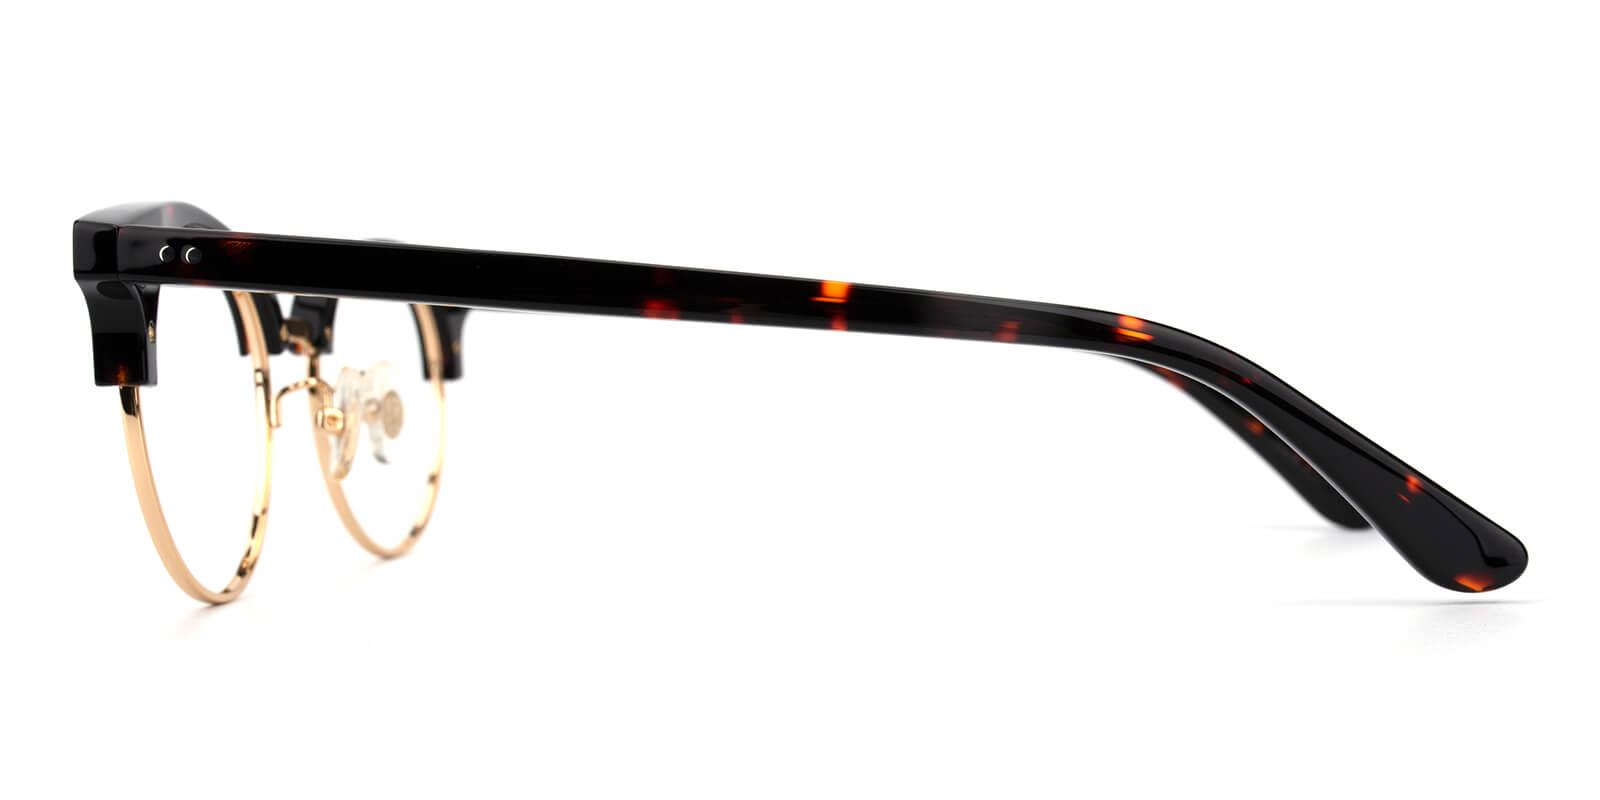 Jinjiay-Tortoise-Oval-Metal-Eyeglasses-additional3